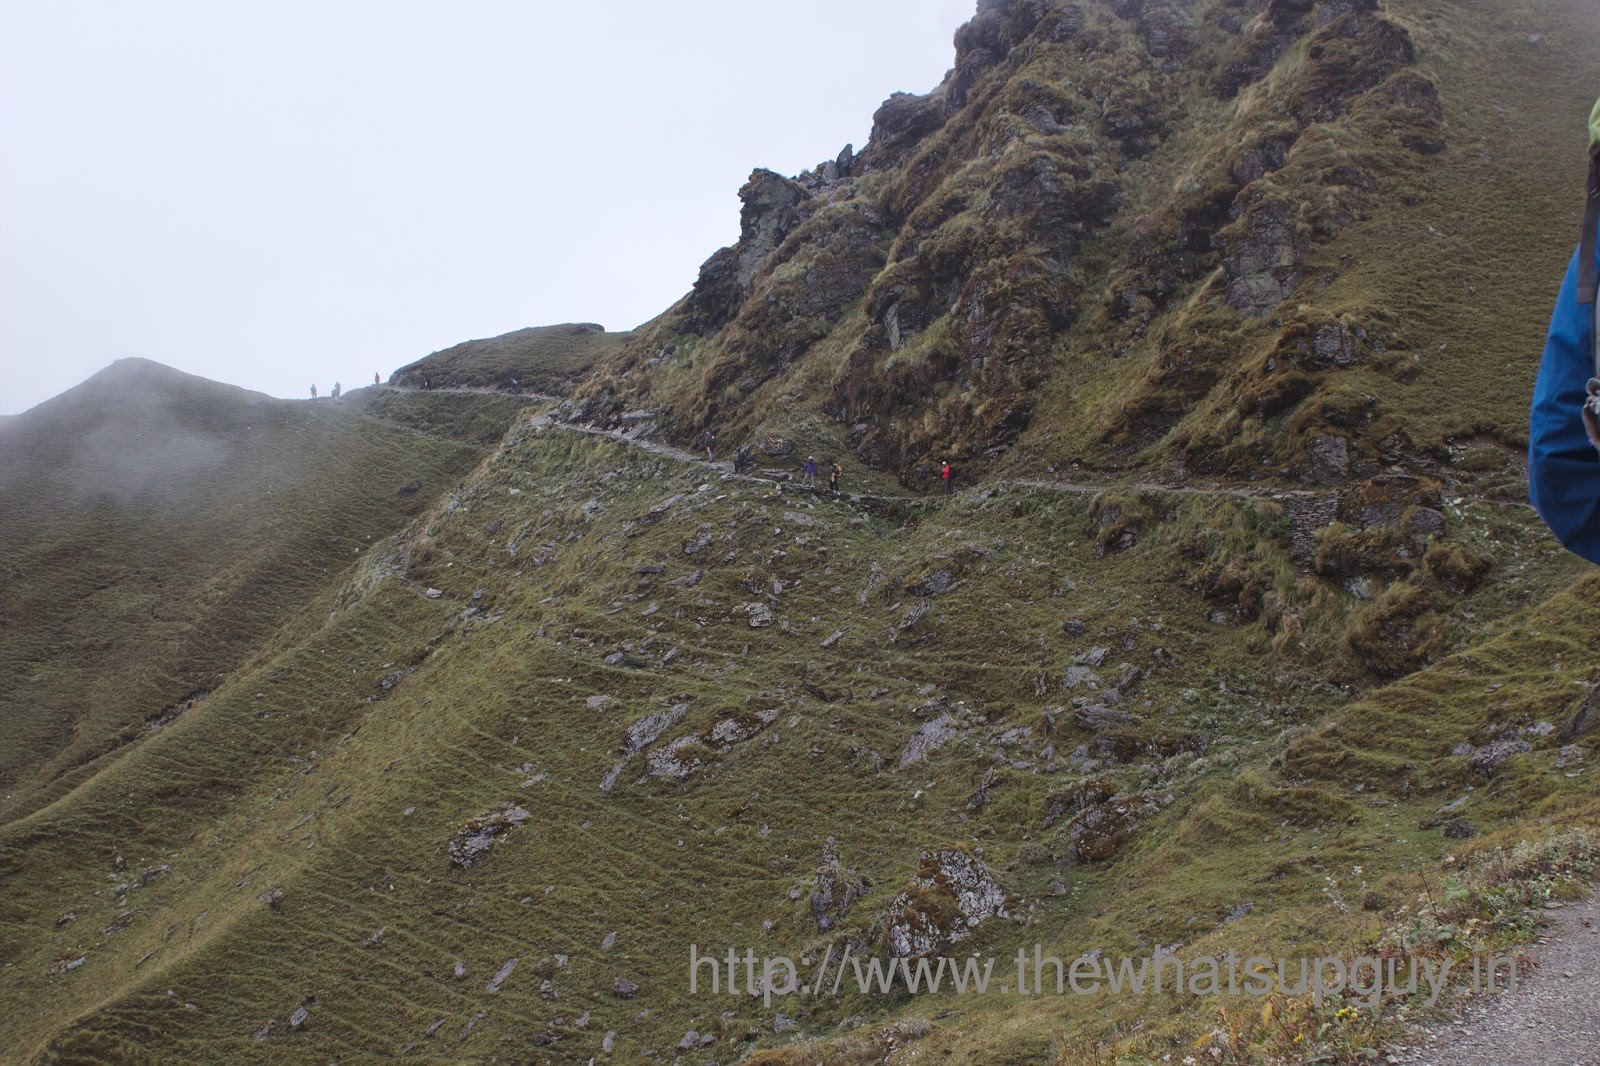 Rocky-Trail-Roopkund-Trek-With-India-Hikes-Day-2